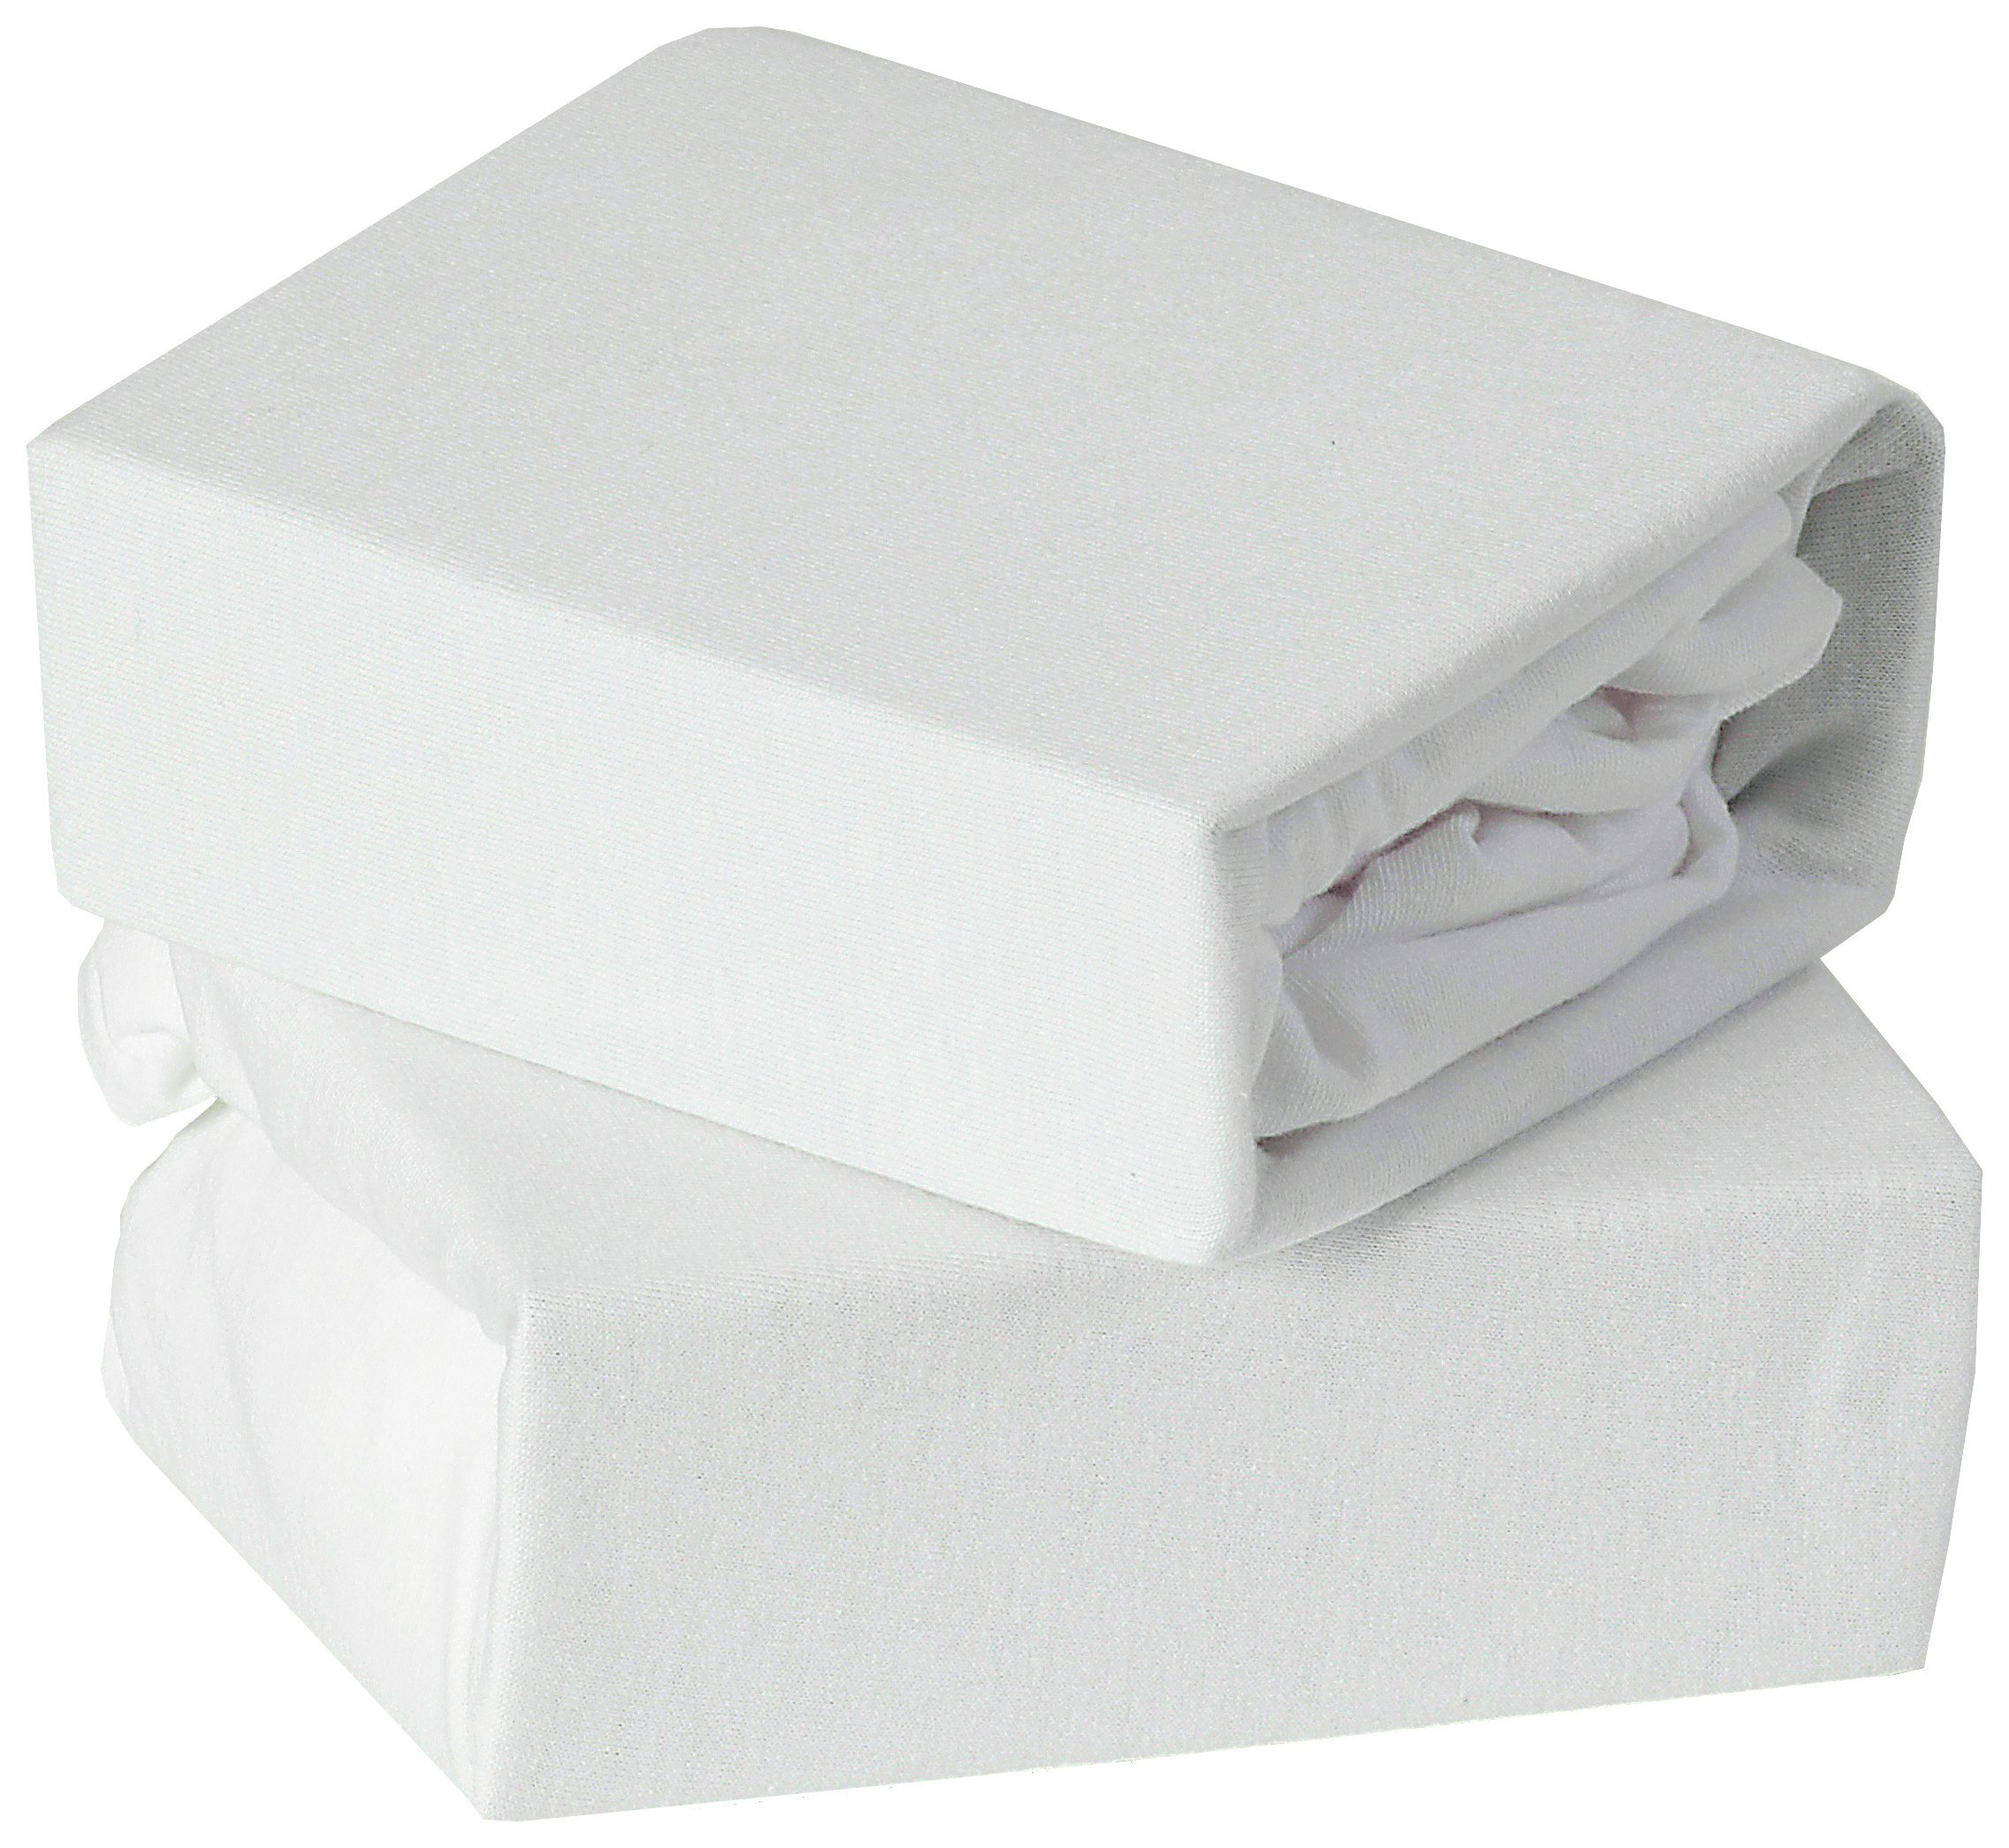 Image of Baby Elegance 2 Pack Fitted Cot Sheets - White.